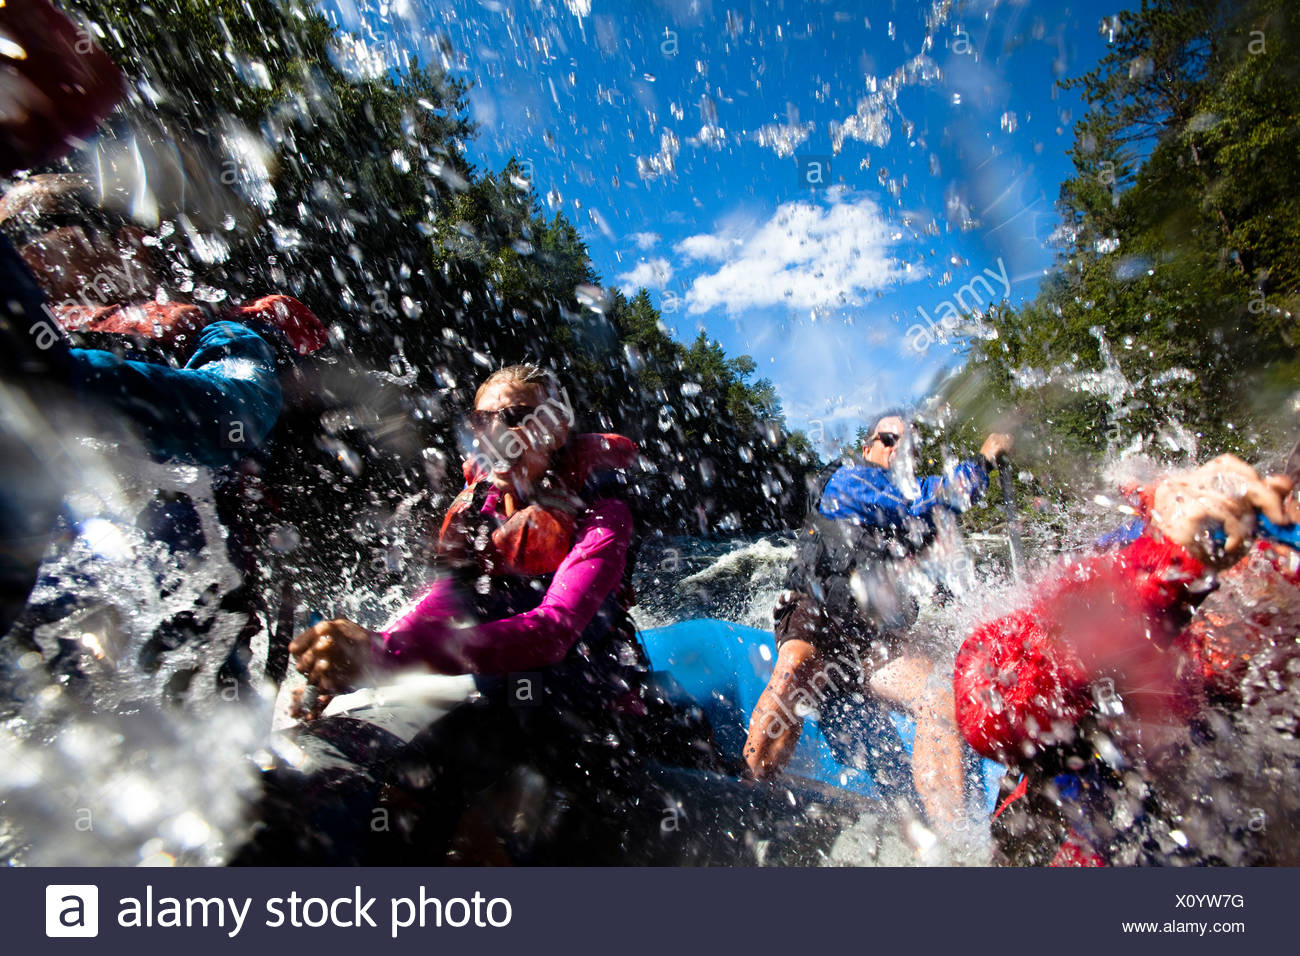 A group of adults whitewater rafting in Maine. - Stock Image